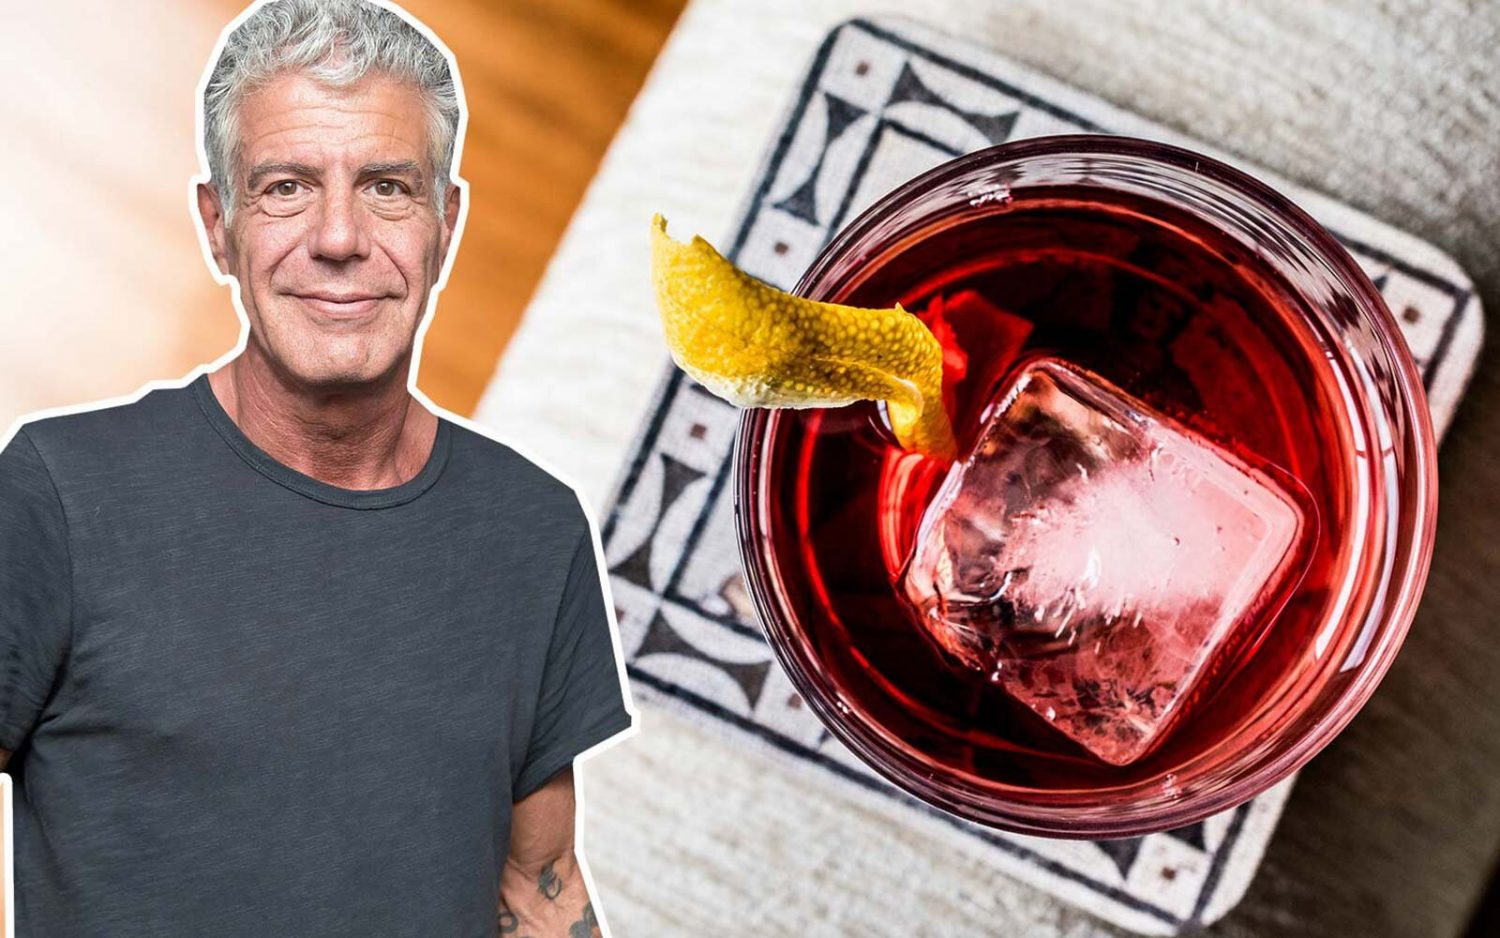 anthony bourdain is making this cocktail popular again